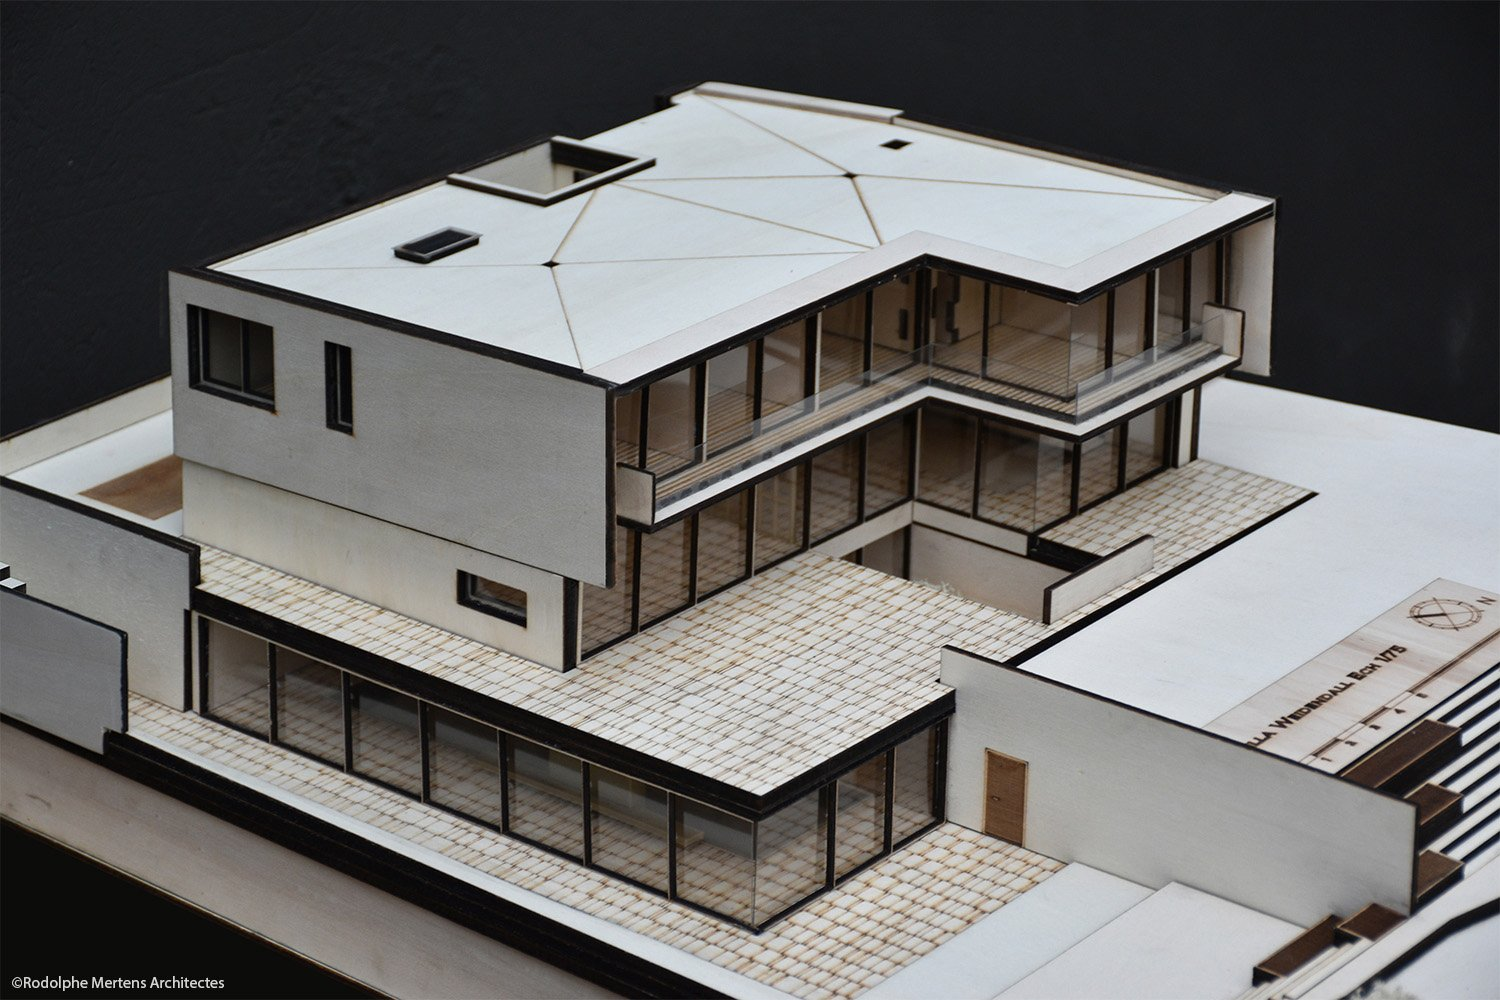 general view of model Rodolphe Mertens Architects}